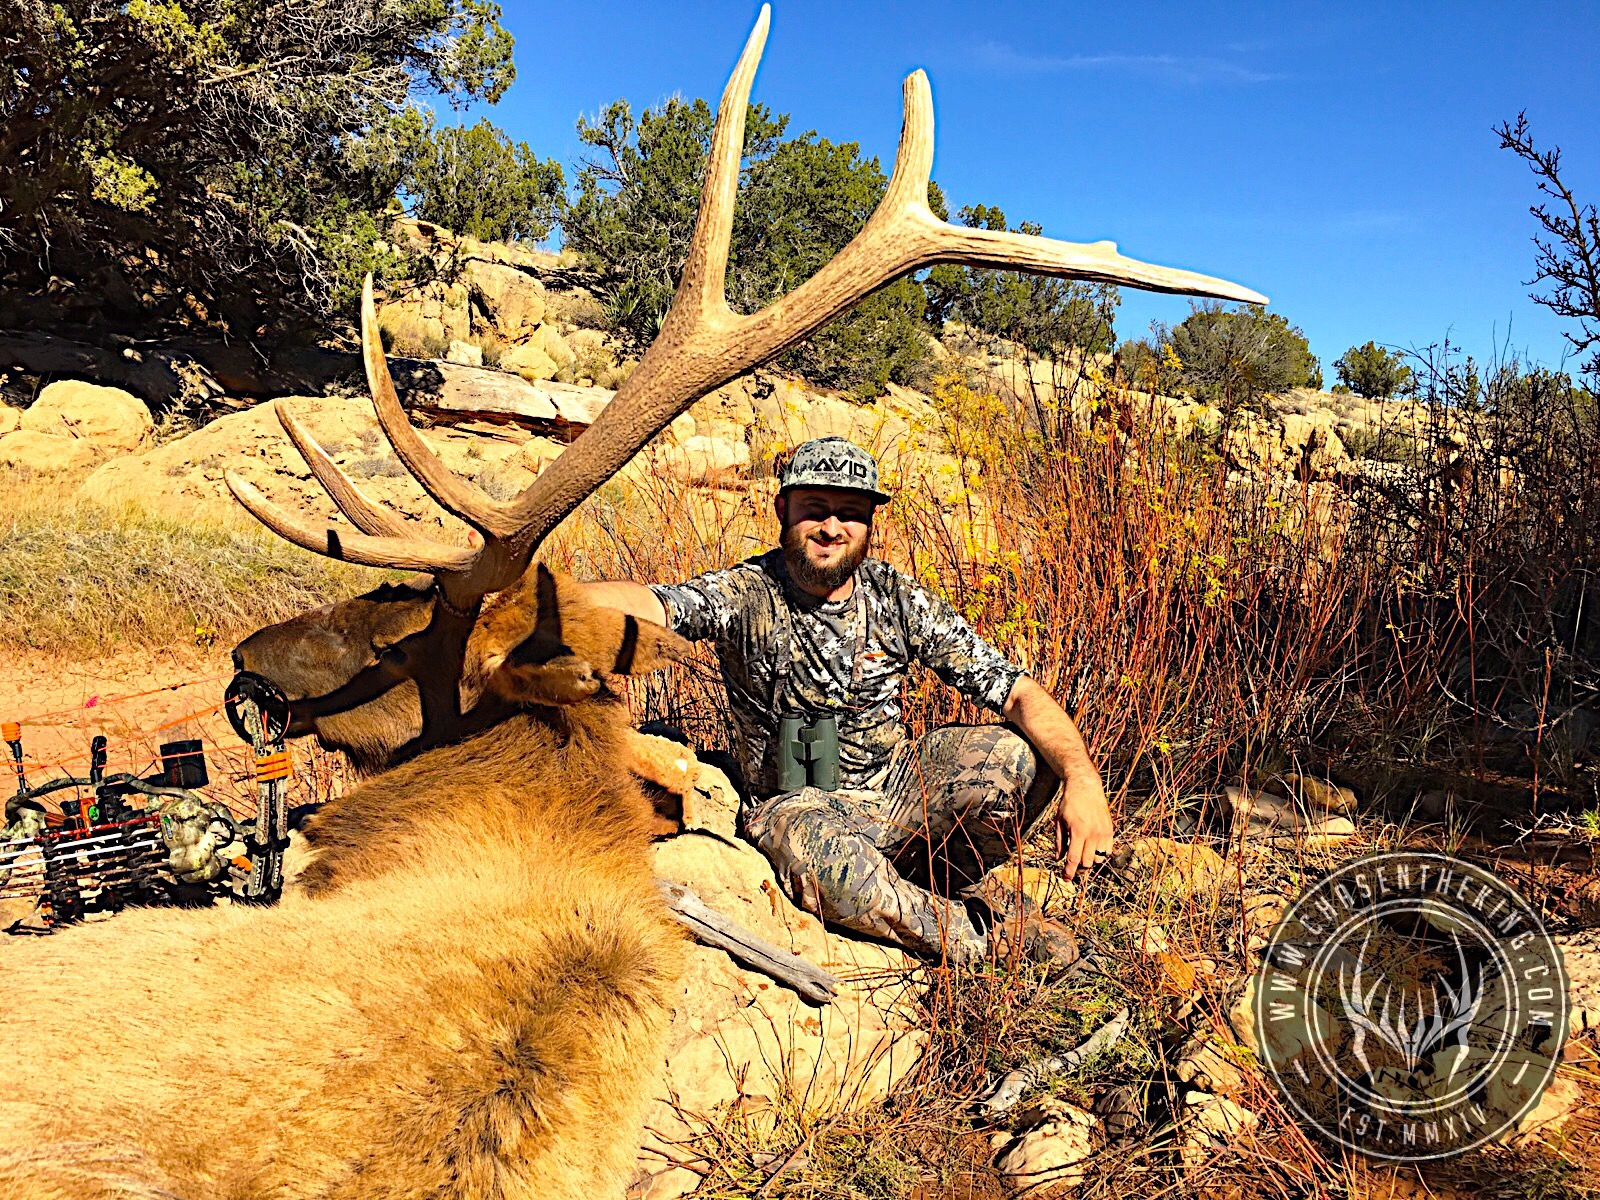 Unit 5A early archery bull elk 4